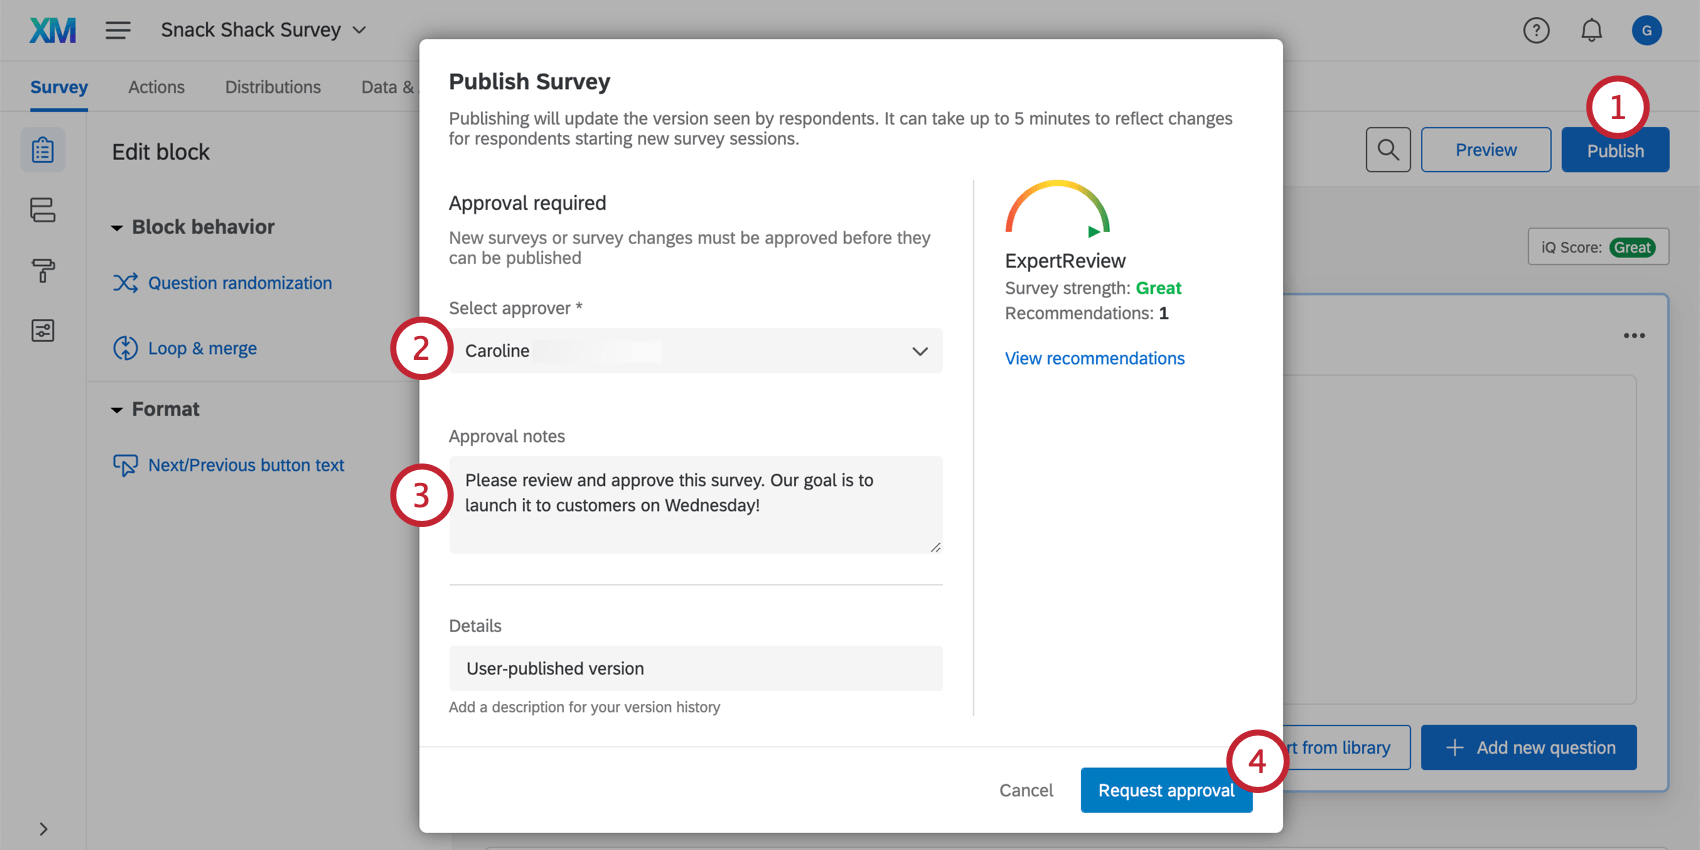 Publishing a survey; the approval process is triggered, and an approval window appears